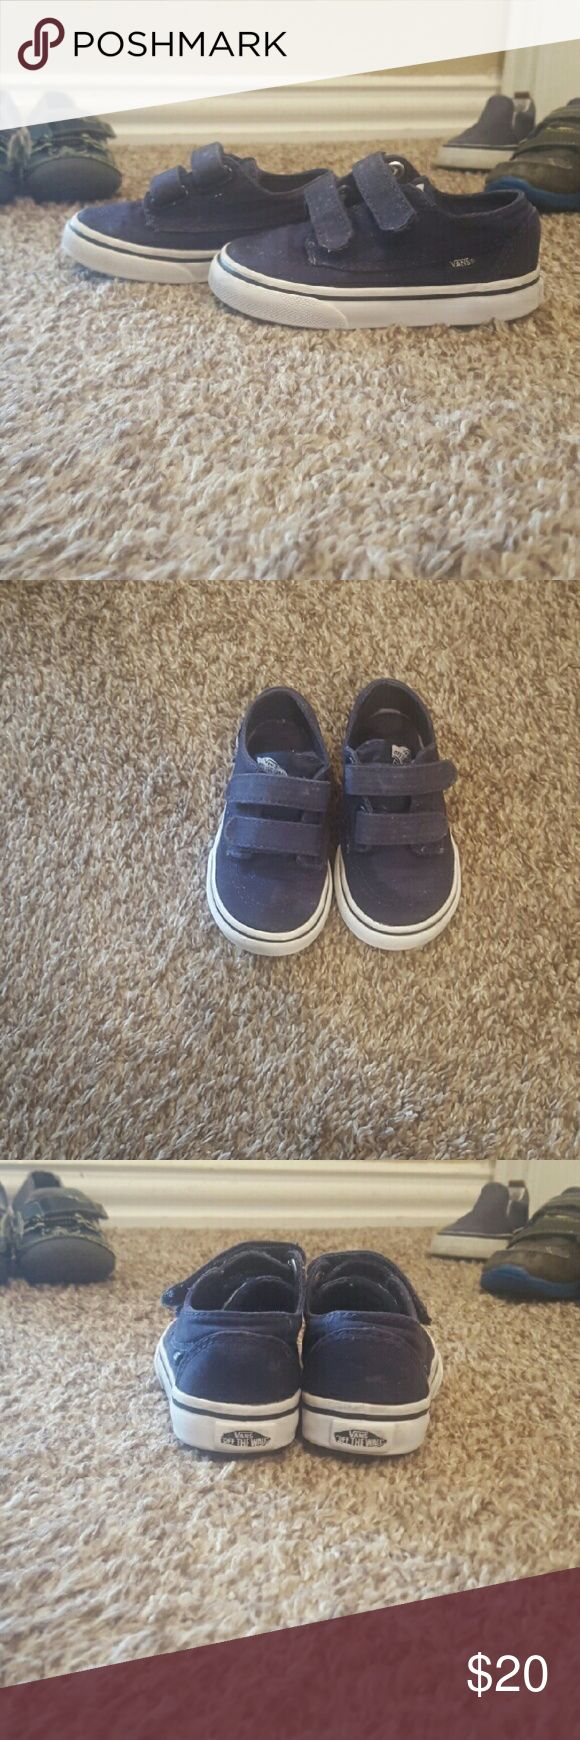 Navy Vans Navy blue velcro Vans, size 5.5 (fits like 5). Good used condition. Vans Shoes